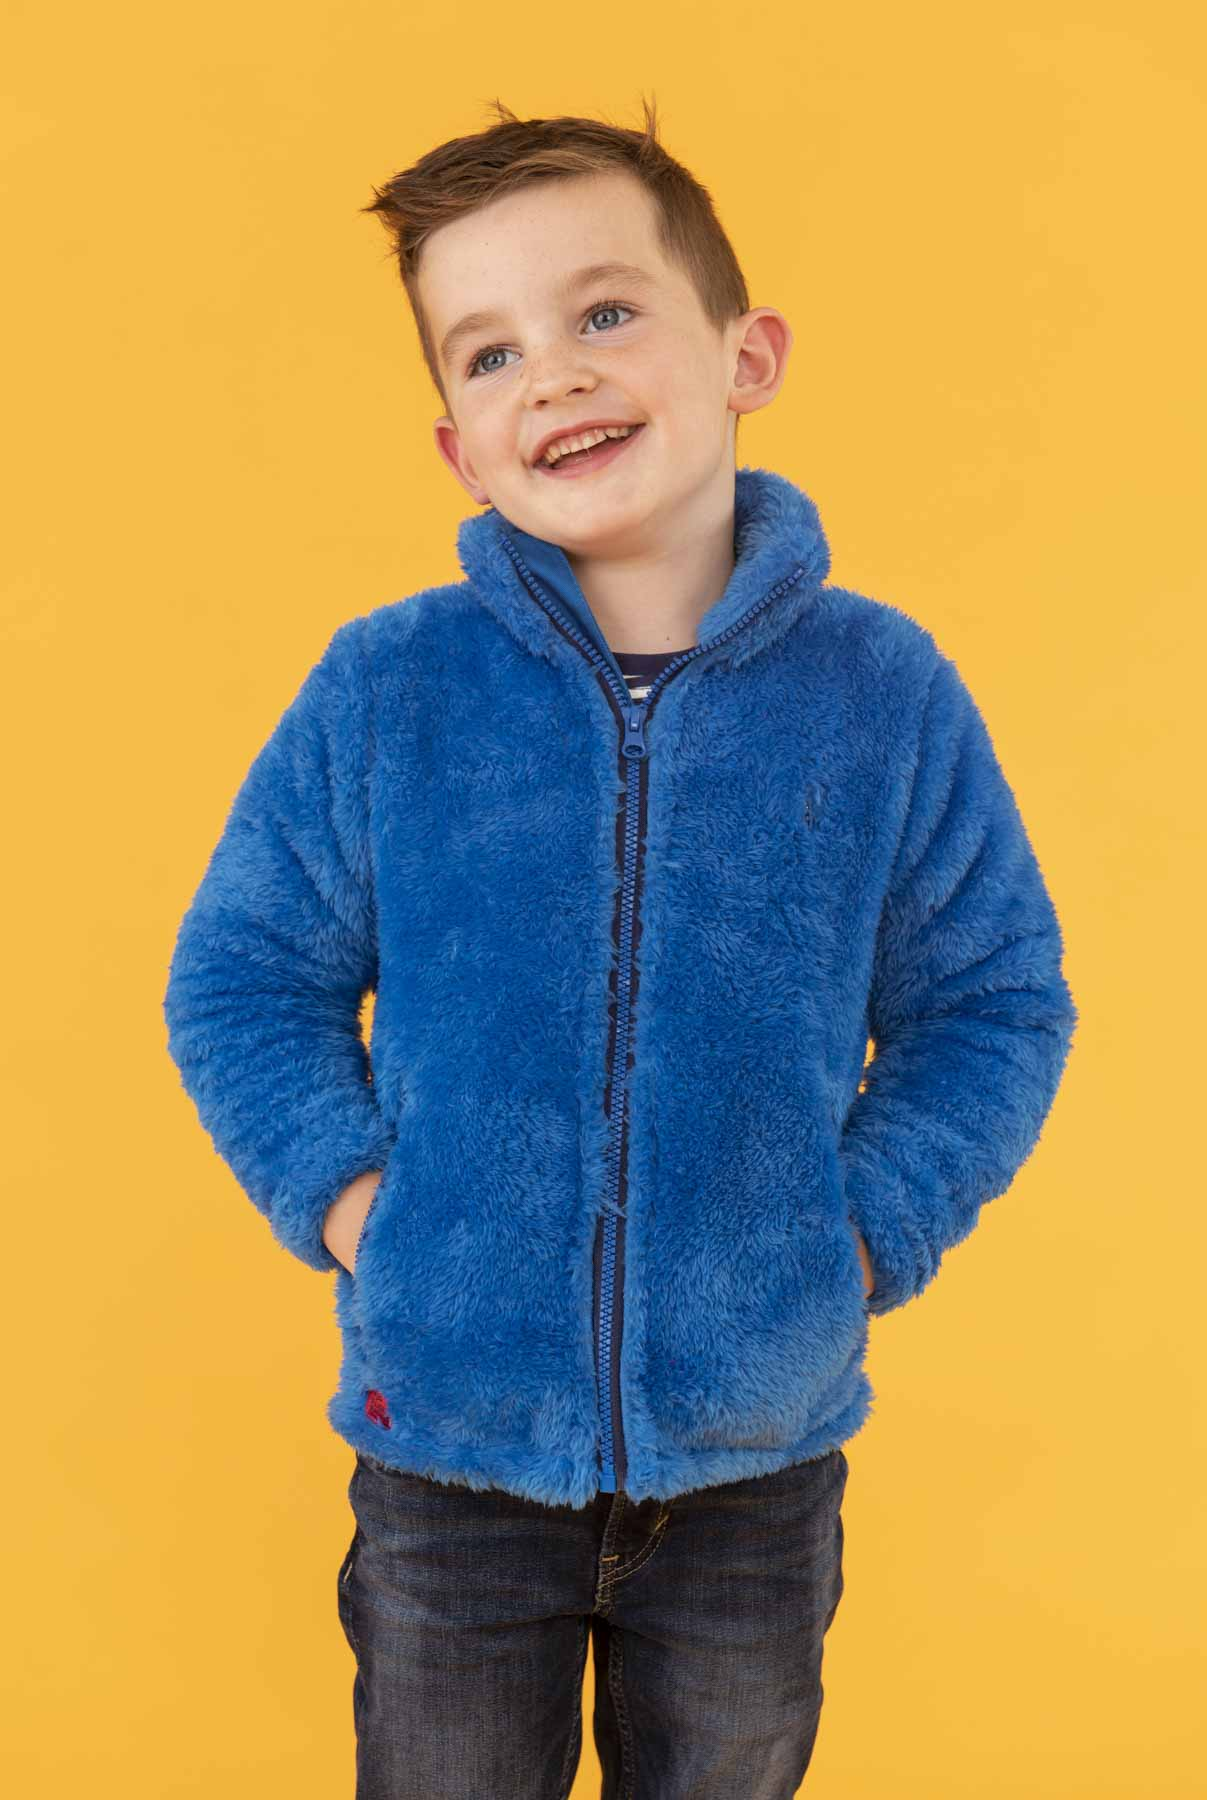 Ted Fleece - Blue, Boy's Full Zip Sherpa Fleece | Lighthouse